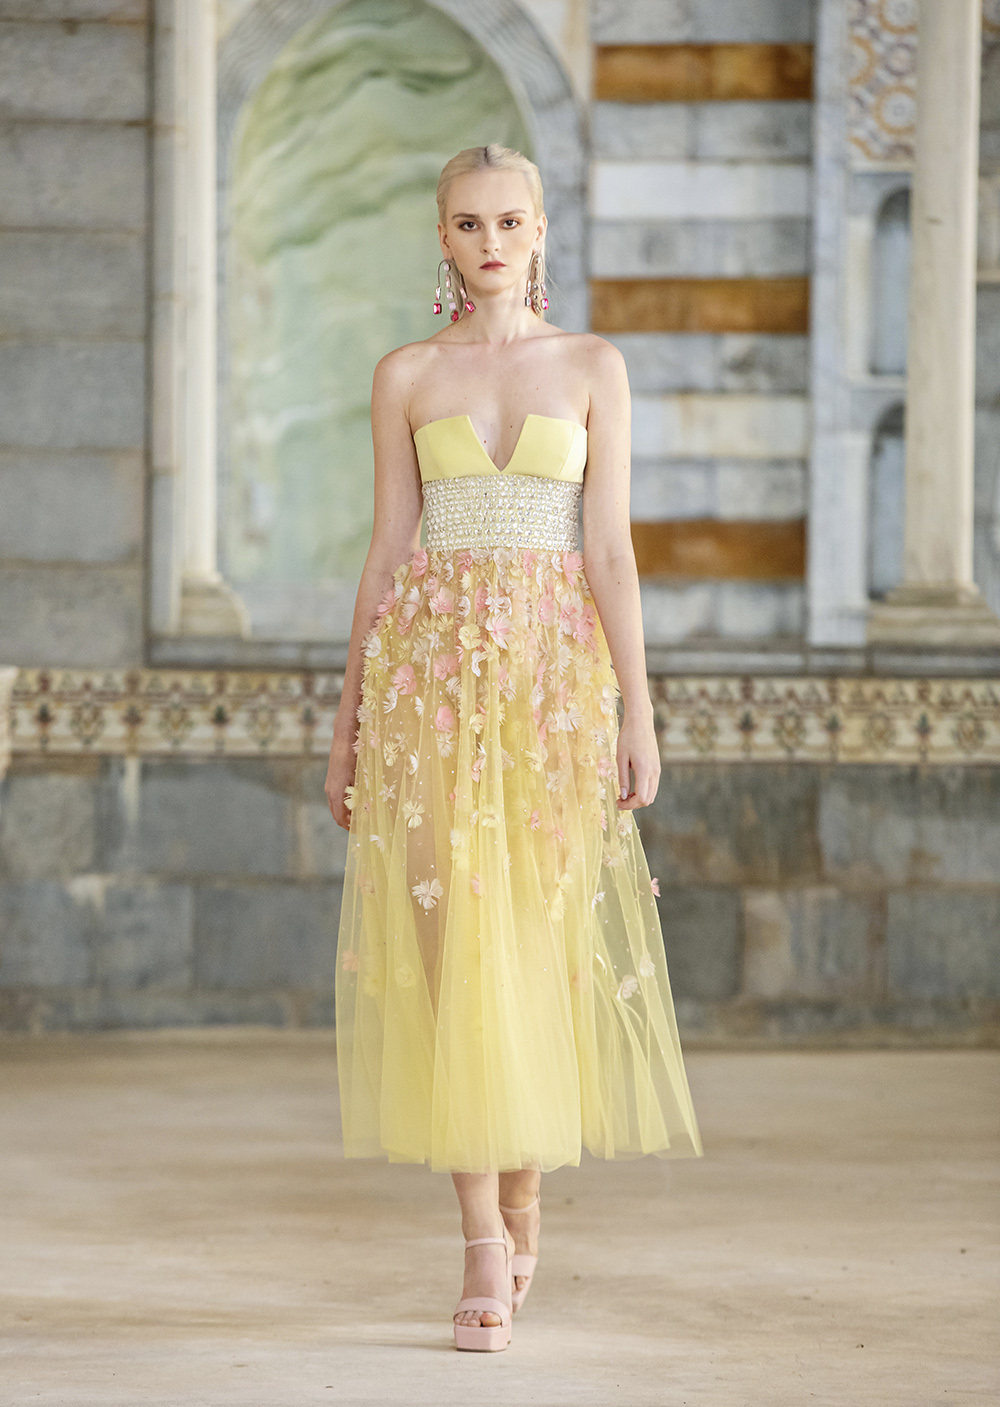 Princess Core Midi Dress with Floral Appliques from Georges Hobeika's SS22 ready-to-wear collection #fashionstyle